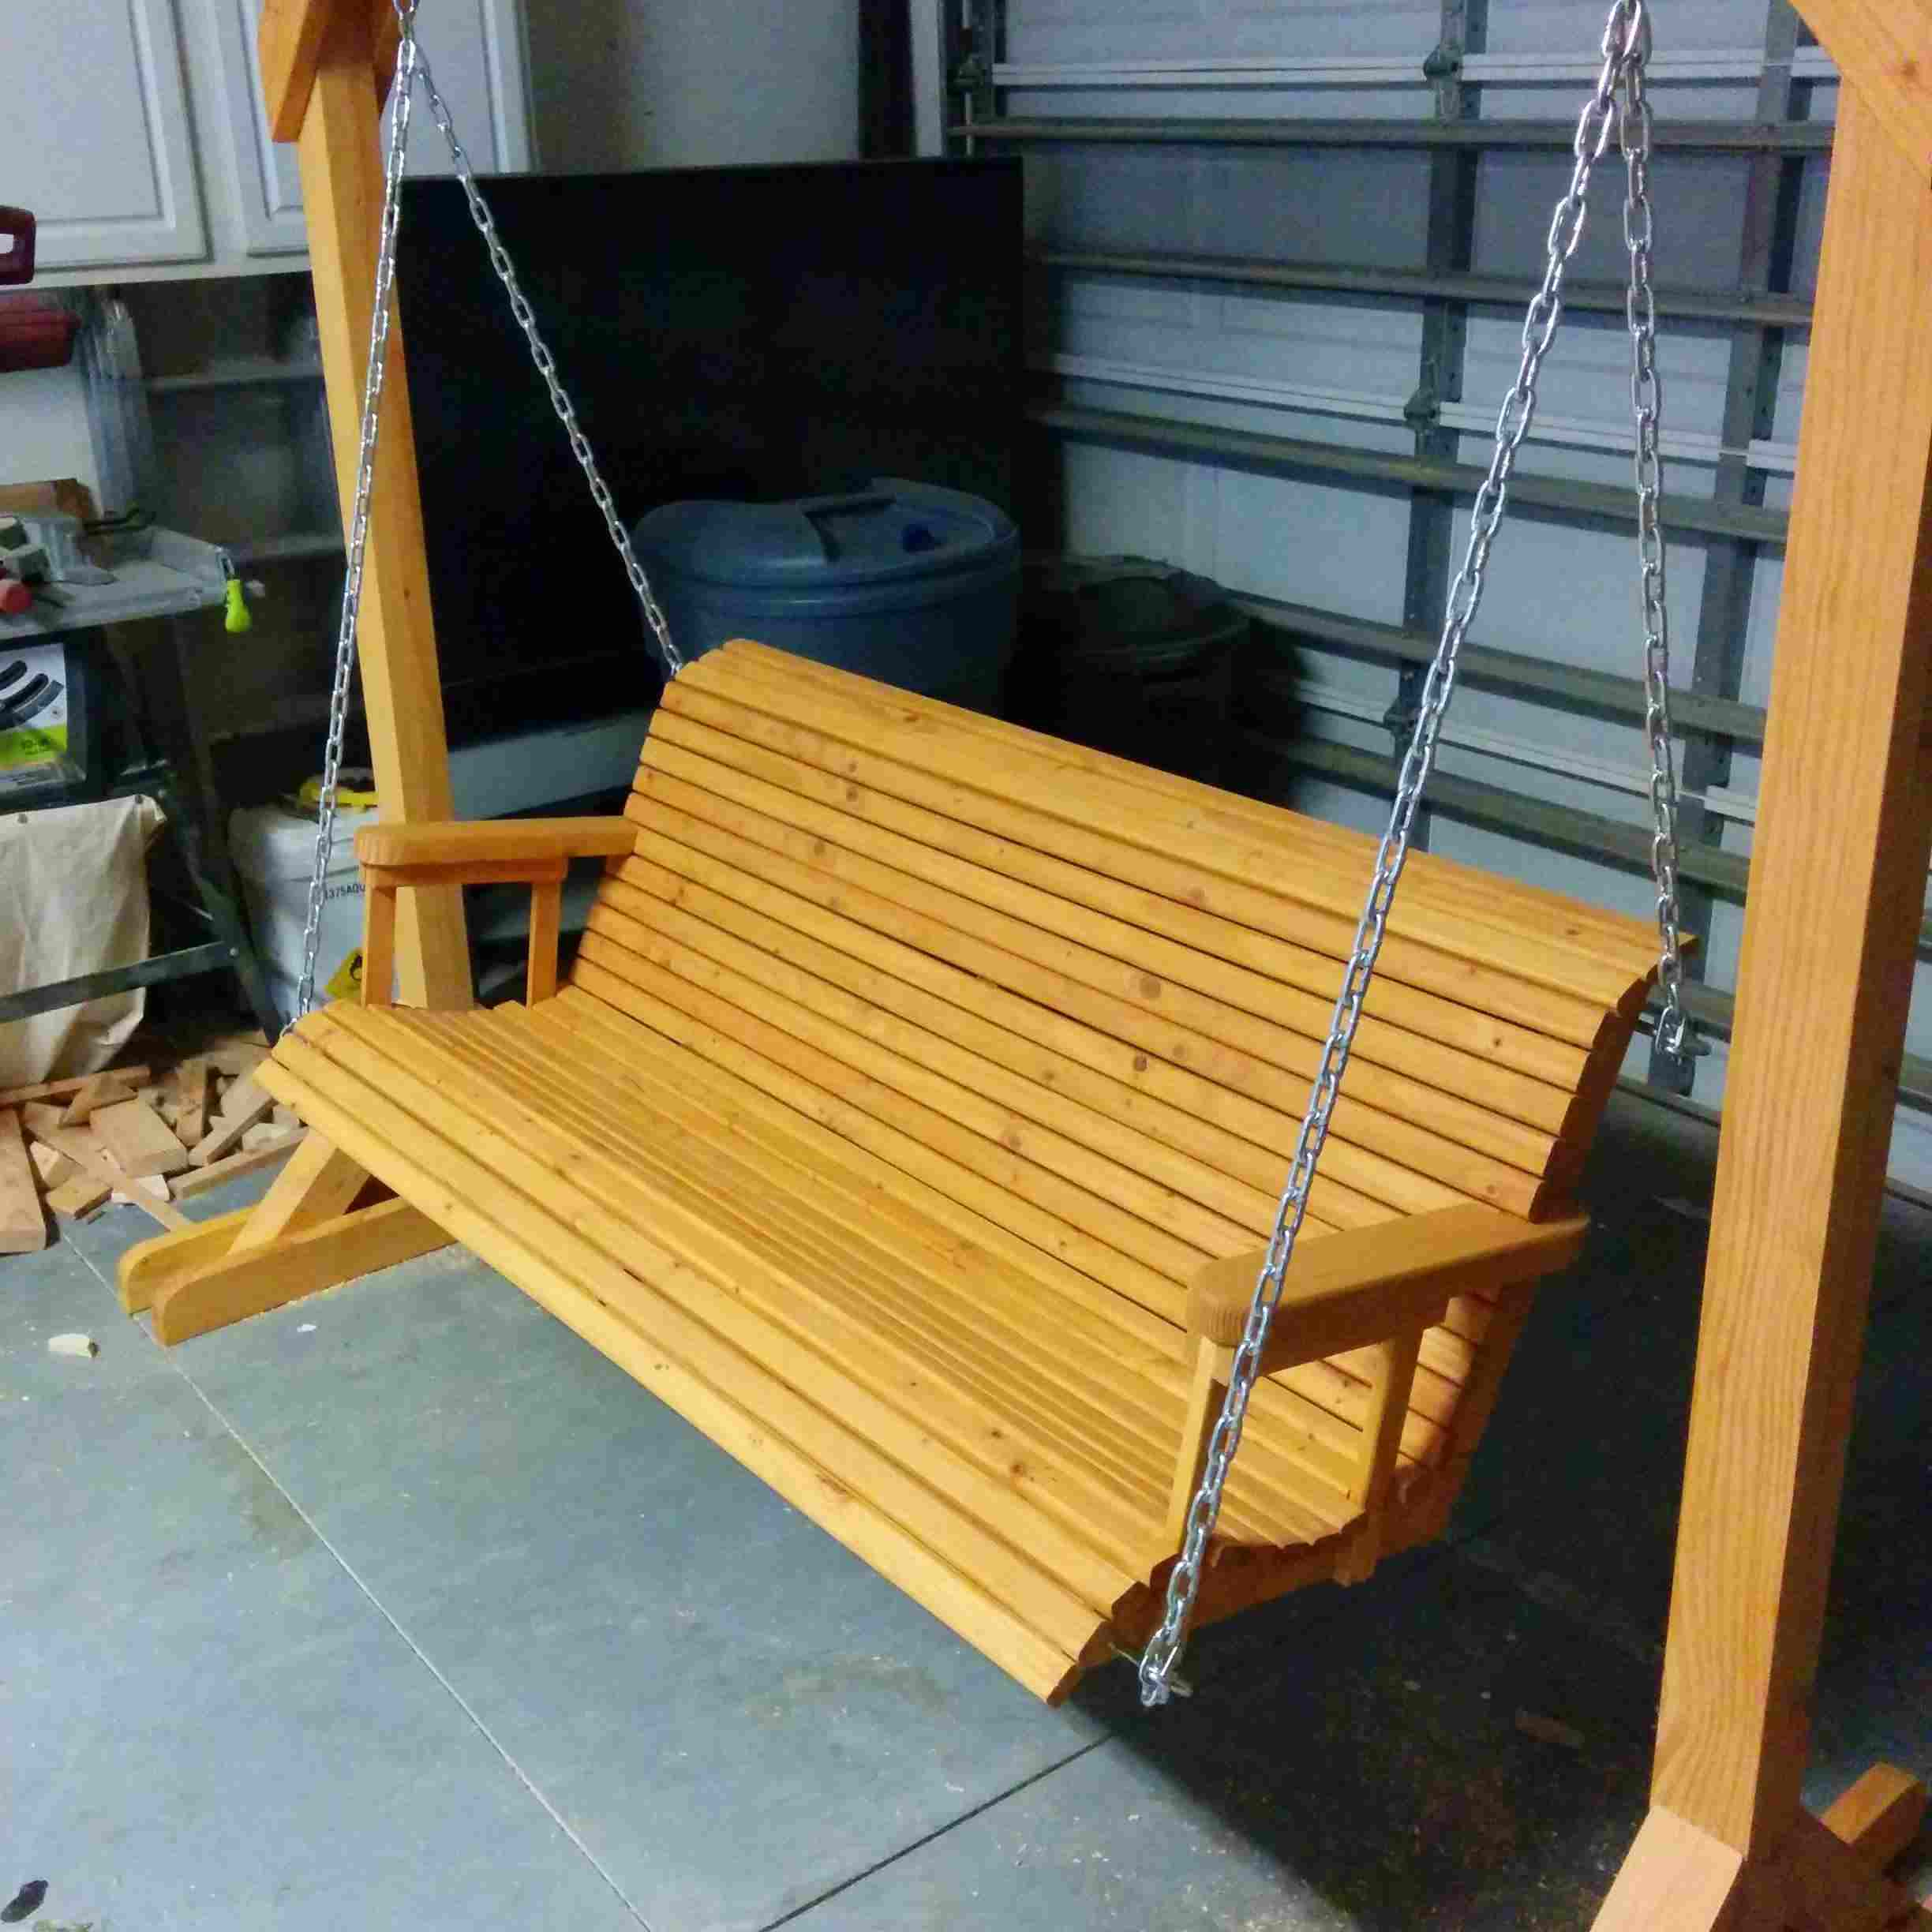 12 Free Porch Swing Plans To Build At Home Pertaining To Hardwood Hanging Porch Swings With Stand (View 12 of 25)